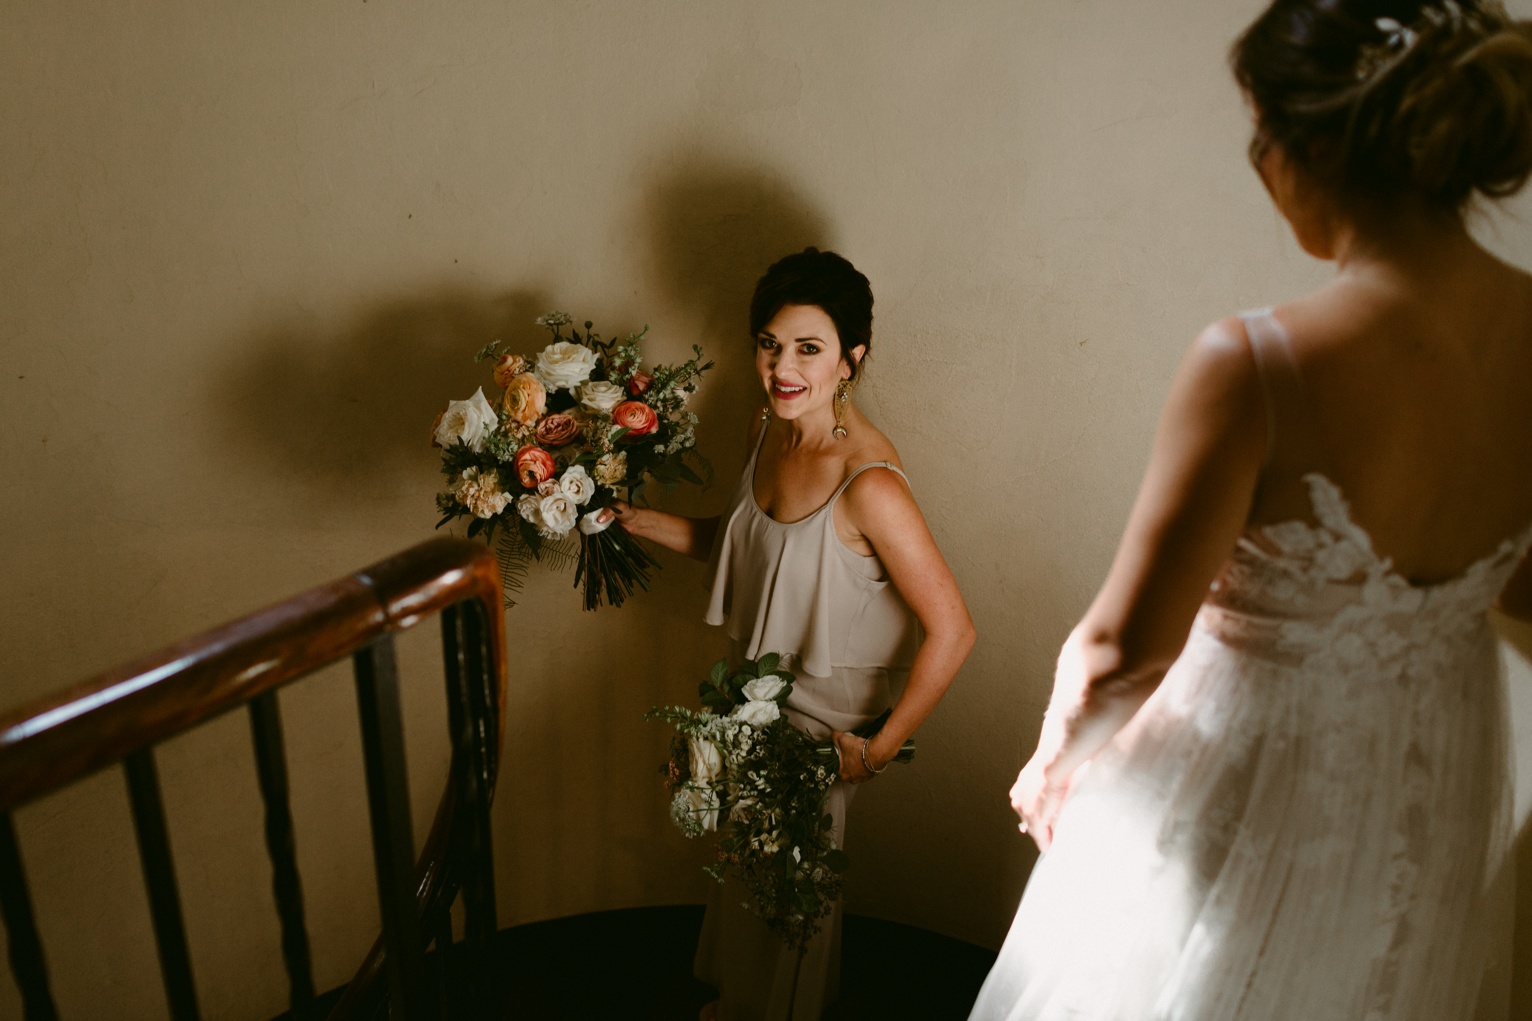 Dreamtownco.com_blog_Nick&Lindsay_Wedding_0060.jpg